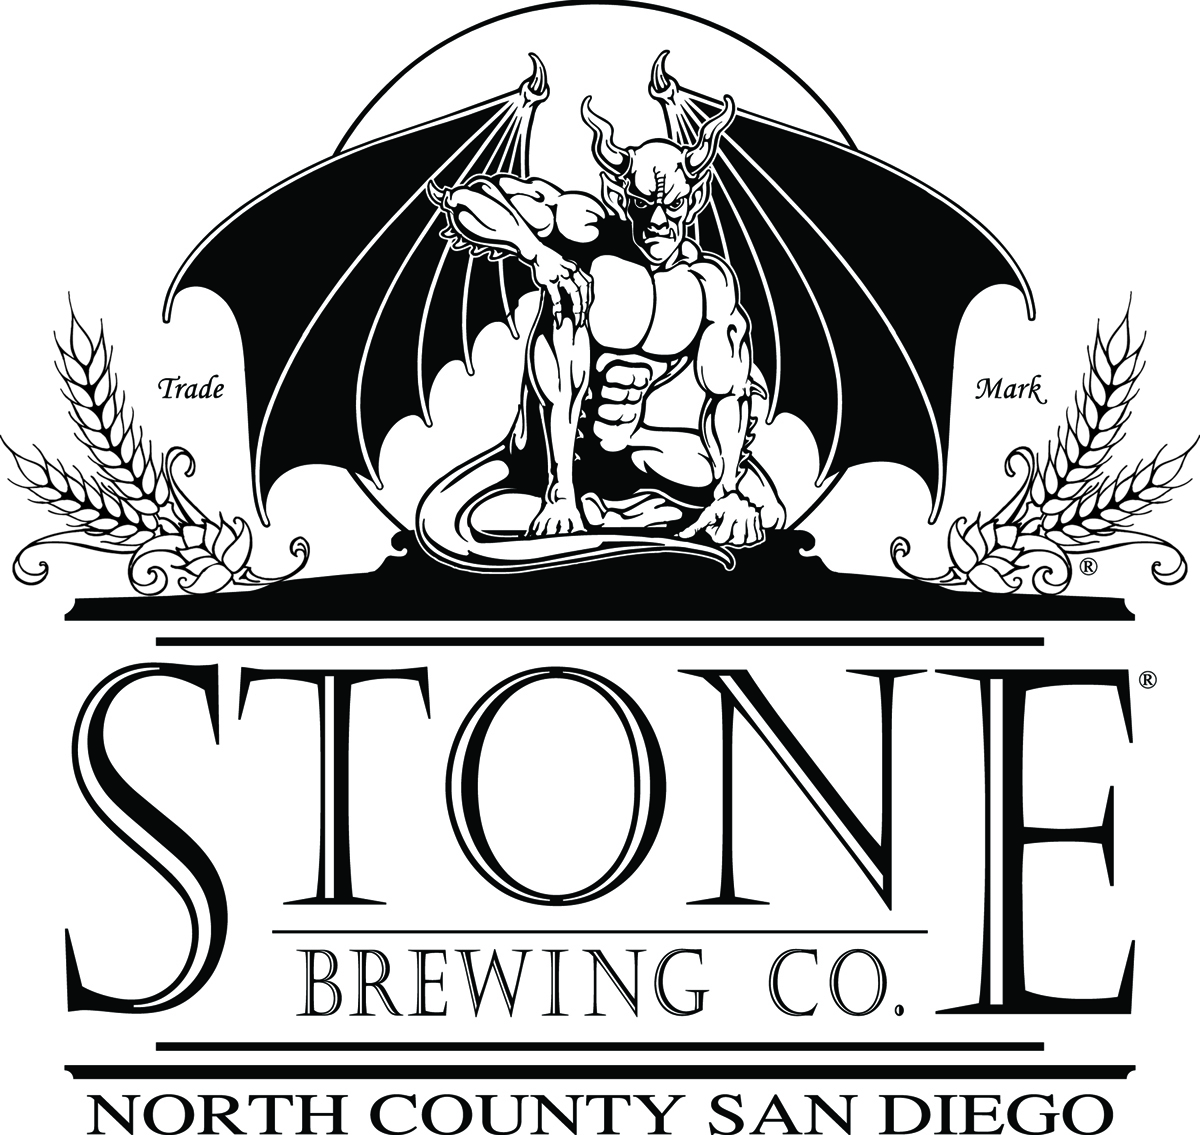 Independence Day Bbq besides Boy Fishing also Stone Brewing News With  mentary Ruinten Ipa Sours Smoked Porter More additionally 360991726358238221 besides 2024 5 Sheppard Ave E Toronto Ontario M2n 2z8 19662022. on bbq games